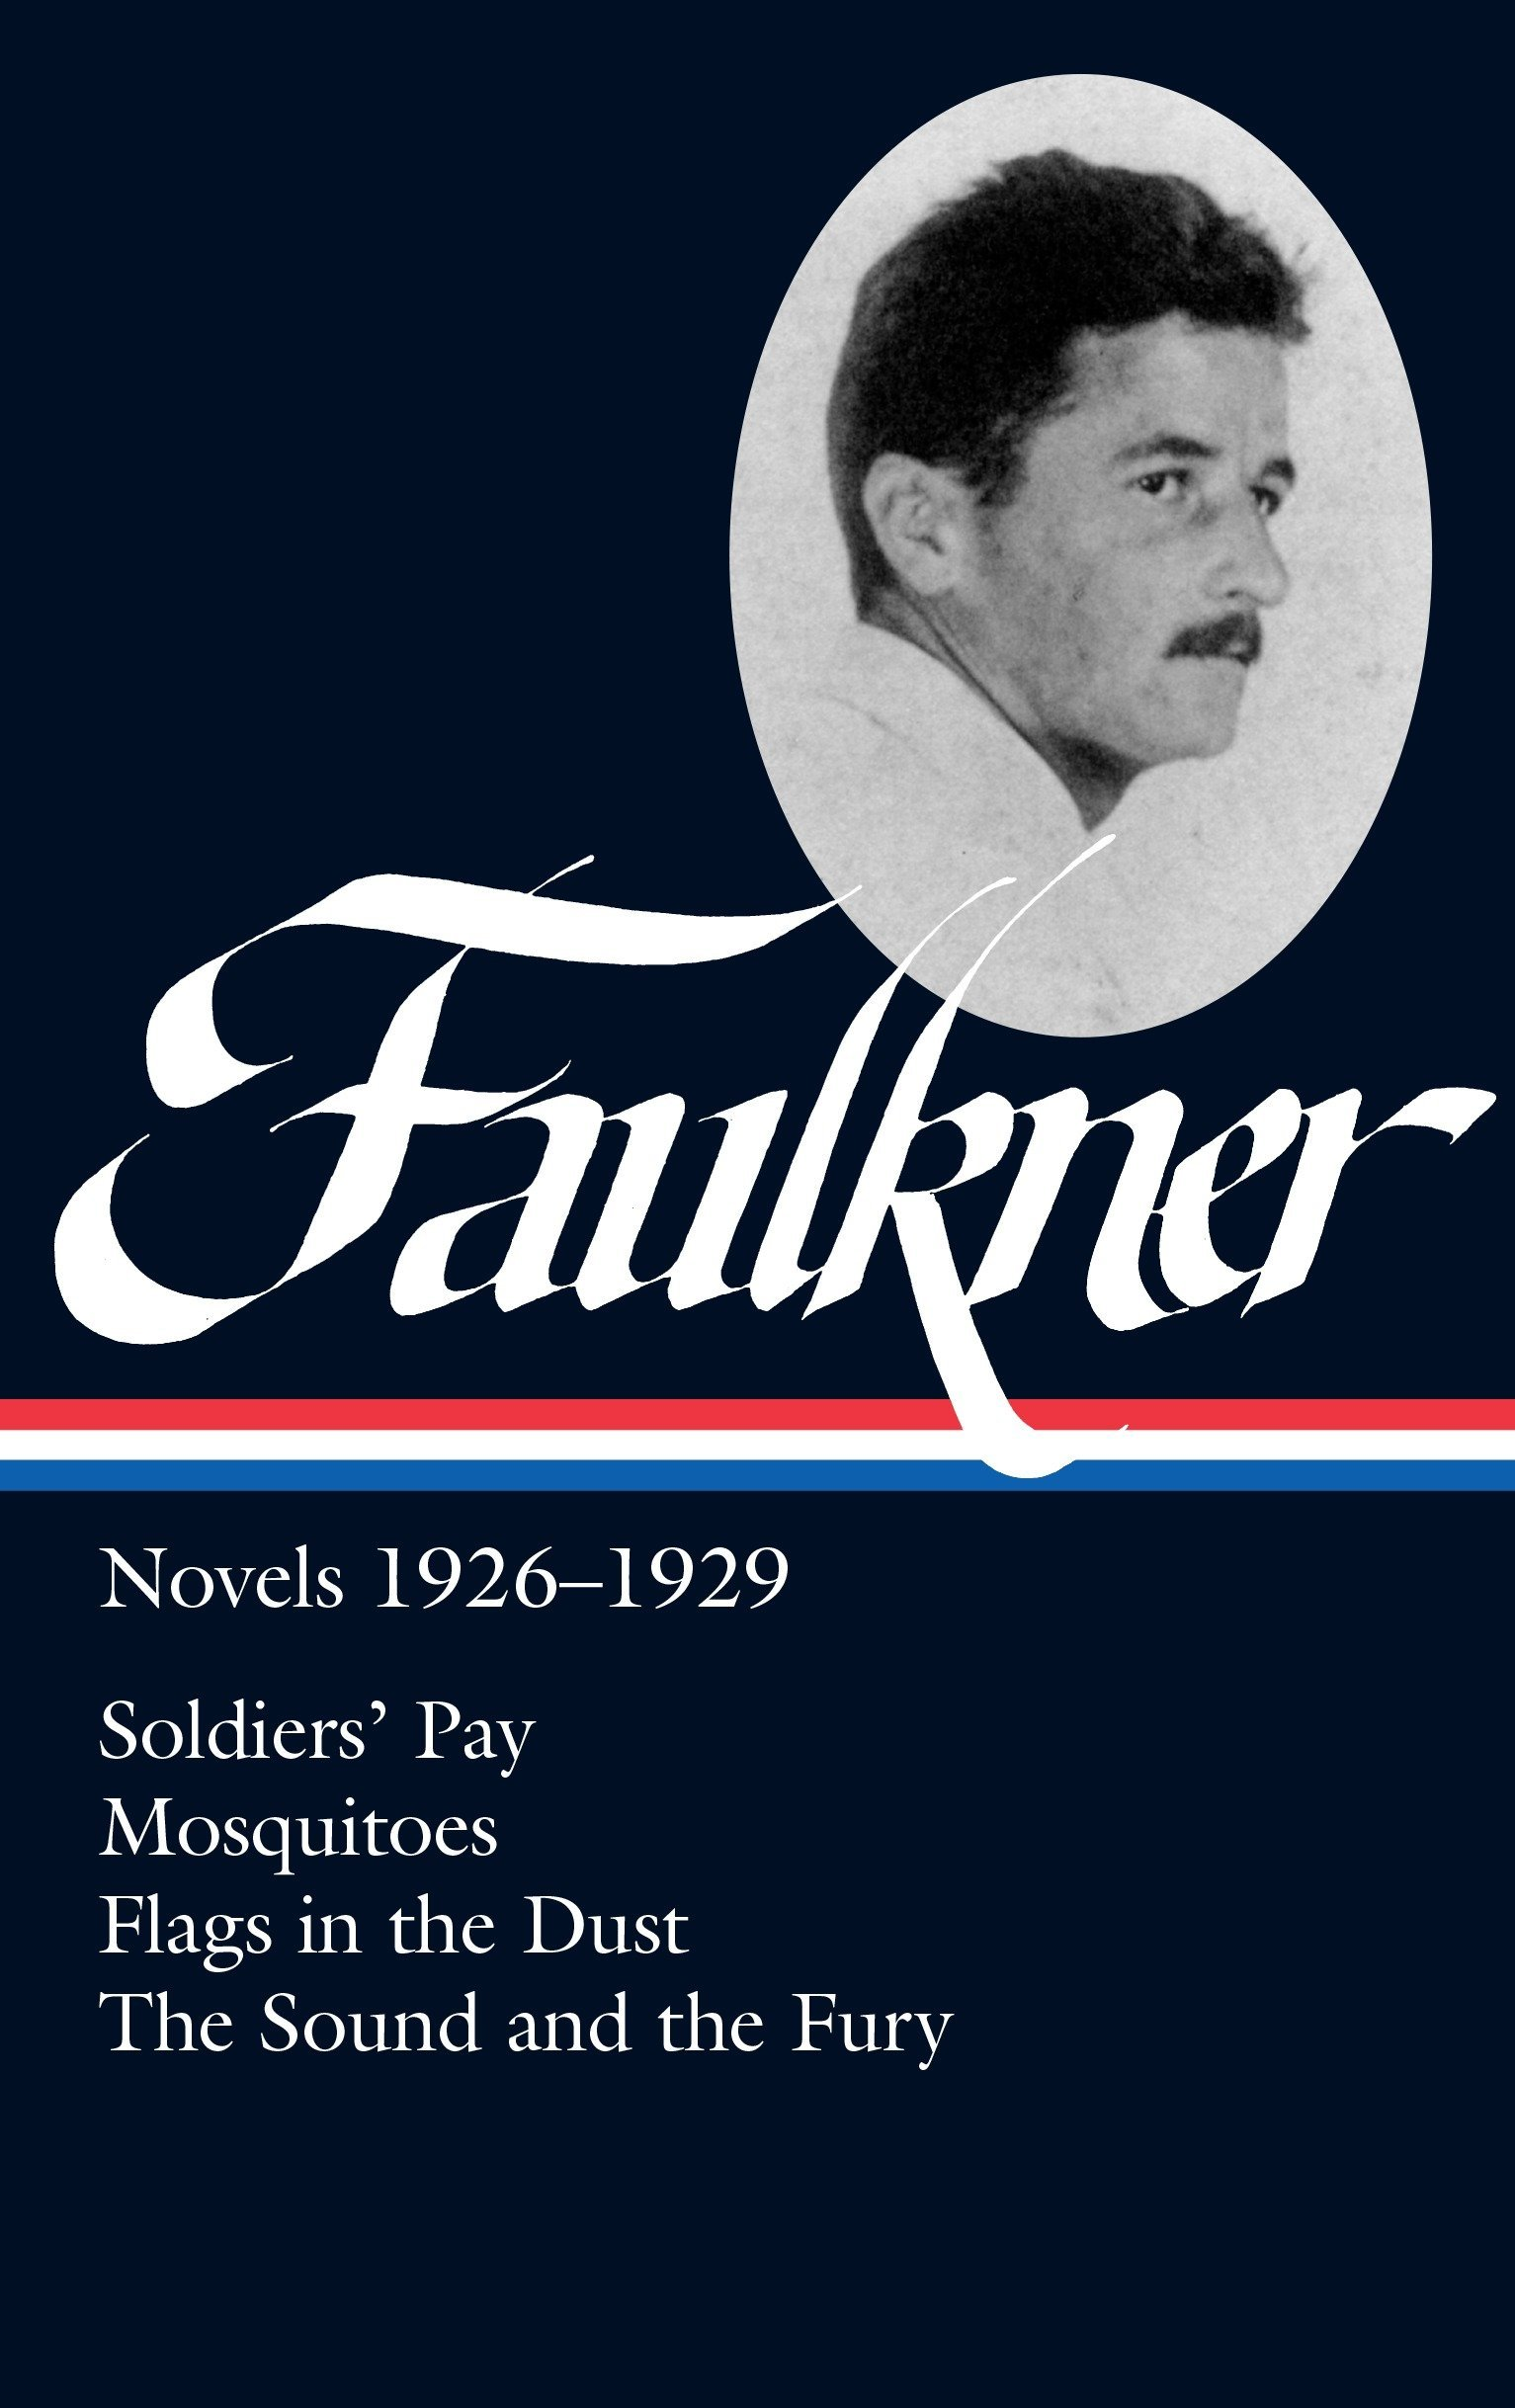 Download William Faulkner: Novels 1926-1929: Soldiers' Pay / Mosquitoes / Flags in the Dust / The Sound and the Fury (Library of America) ebook